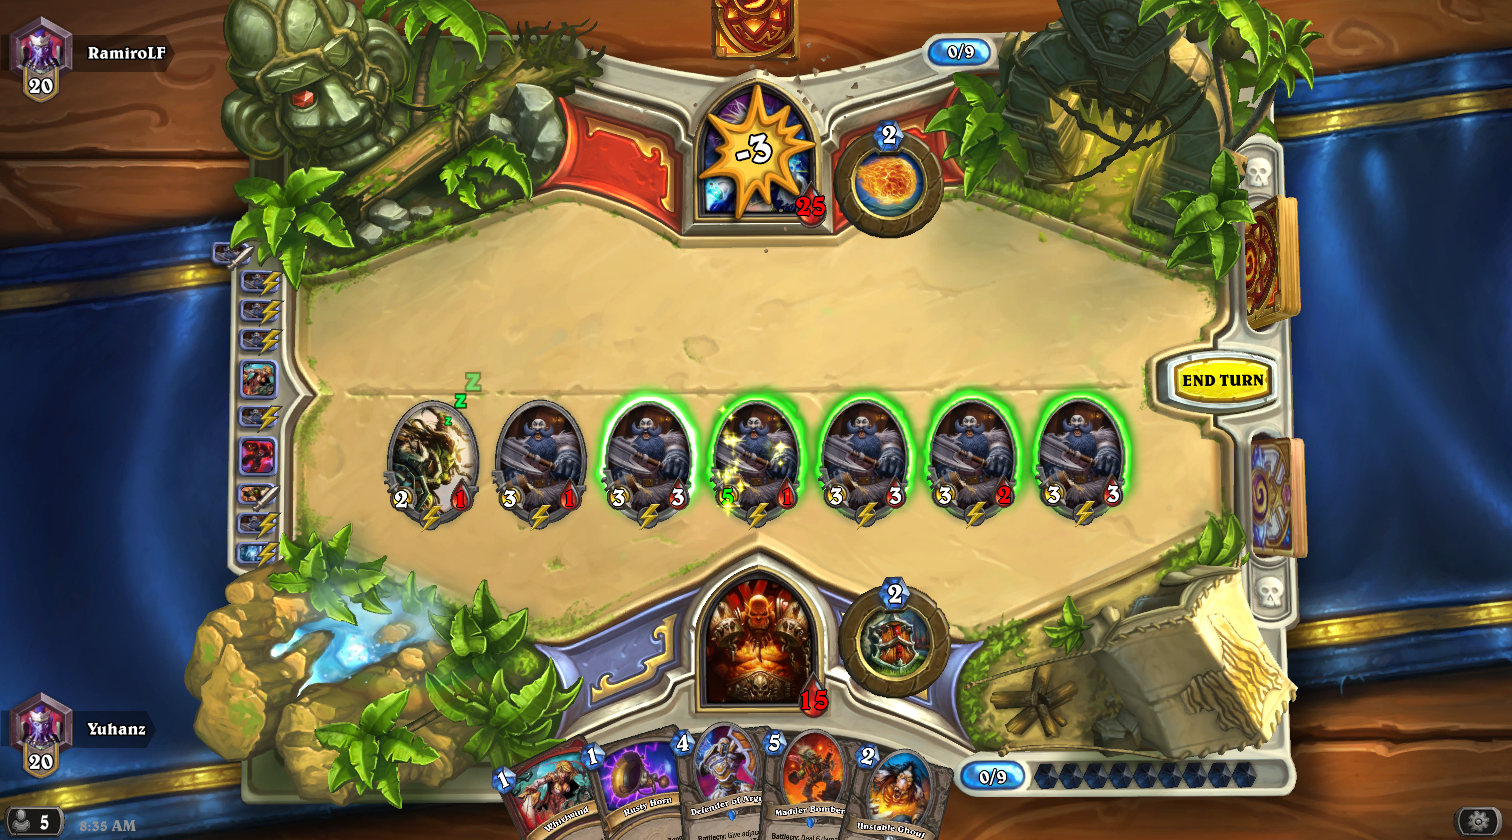 """Certain strategies, such as the """"Patron Warrior"""" deck, were extremely potent in the right player's hands. Instead of minor tweaks to make these combos not quite as terrifying, Blizzard removed them from the game entirely, leading to outrage from fans who had spent countless hours practicing some of the most intricate and difficult strategies in the game."""